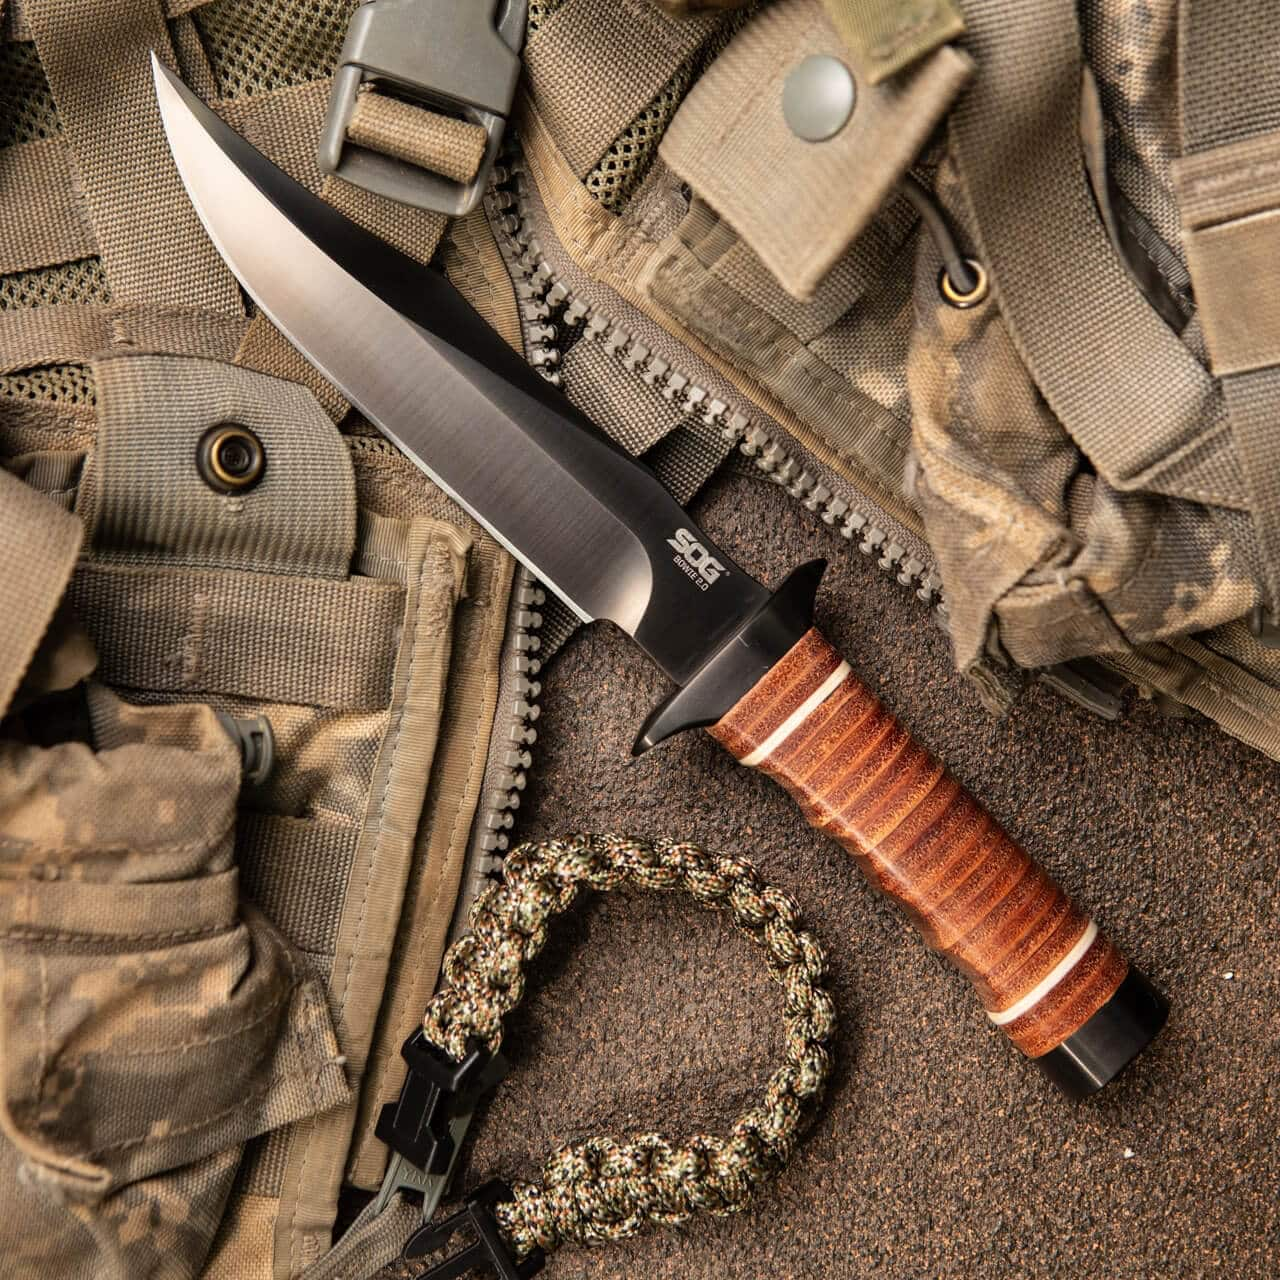 16 Of The Best Tactical Knives